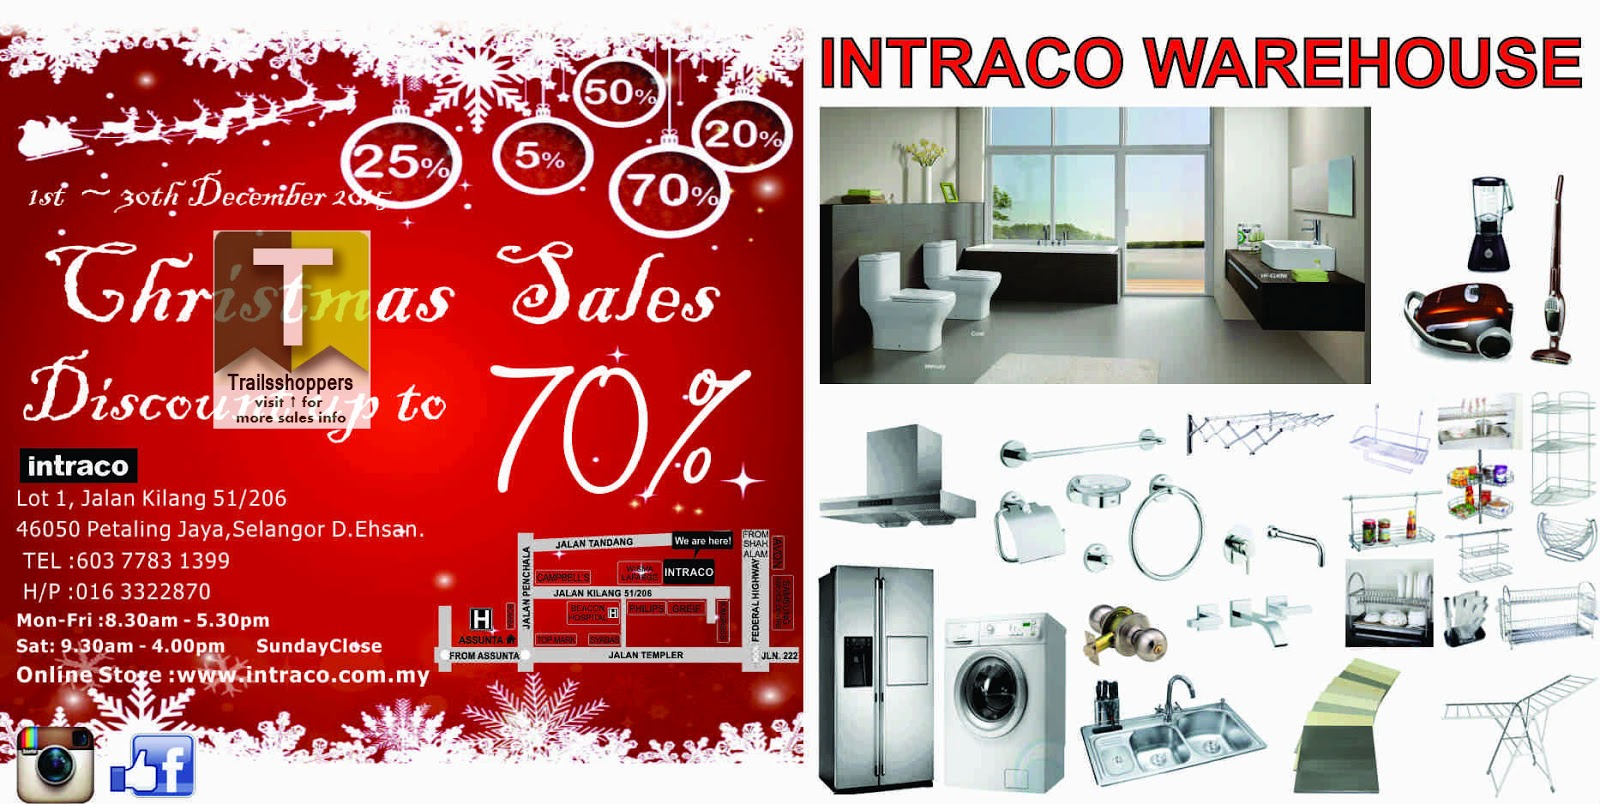 Intraco Warehouse Sales 2015